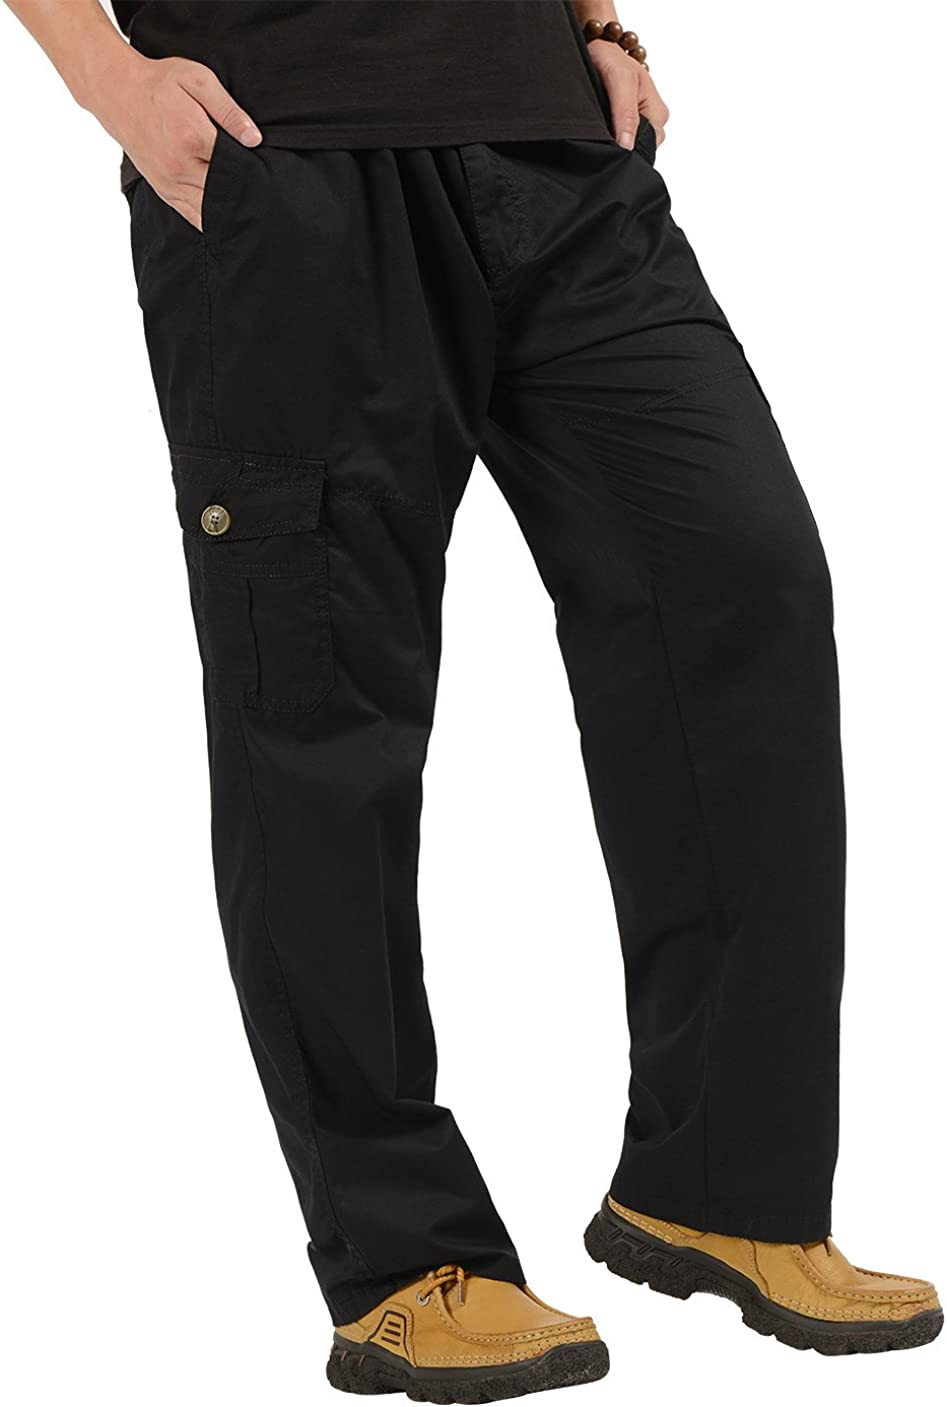 NEW before selling Men's Jacksonville Mall Casual Cargo Pants Loose-fit with Straight M Outdoor